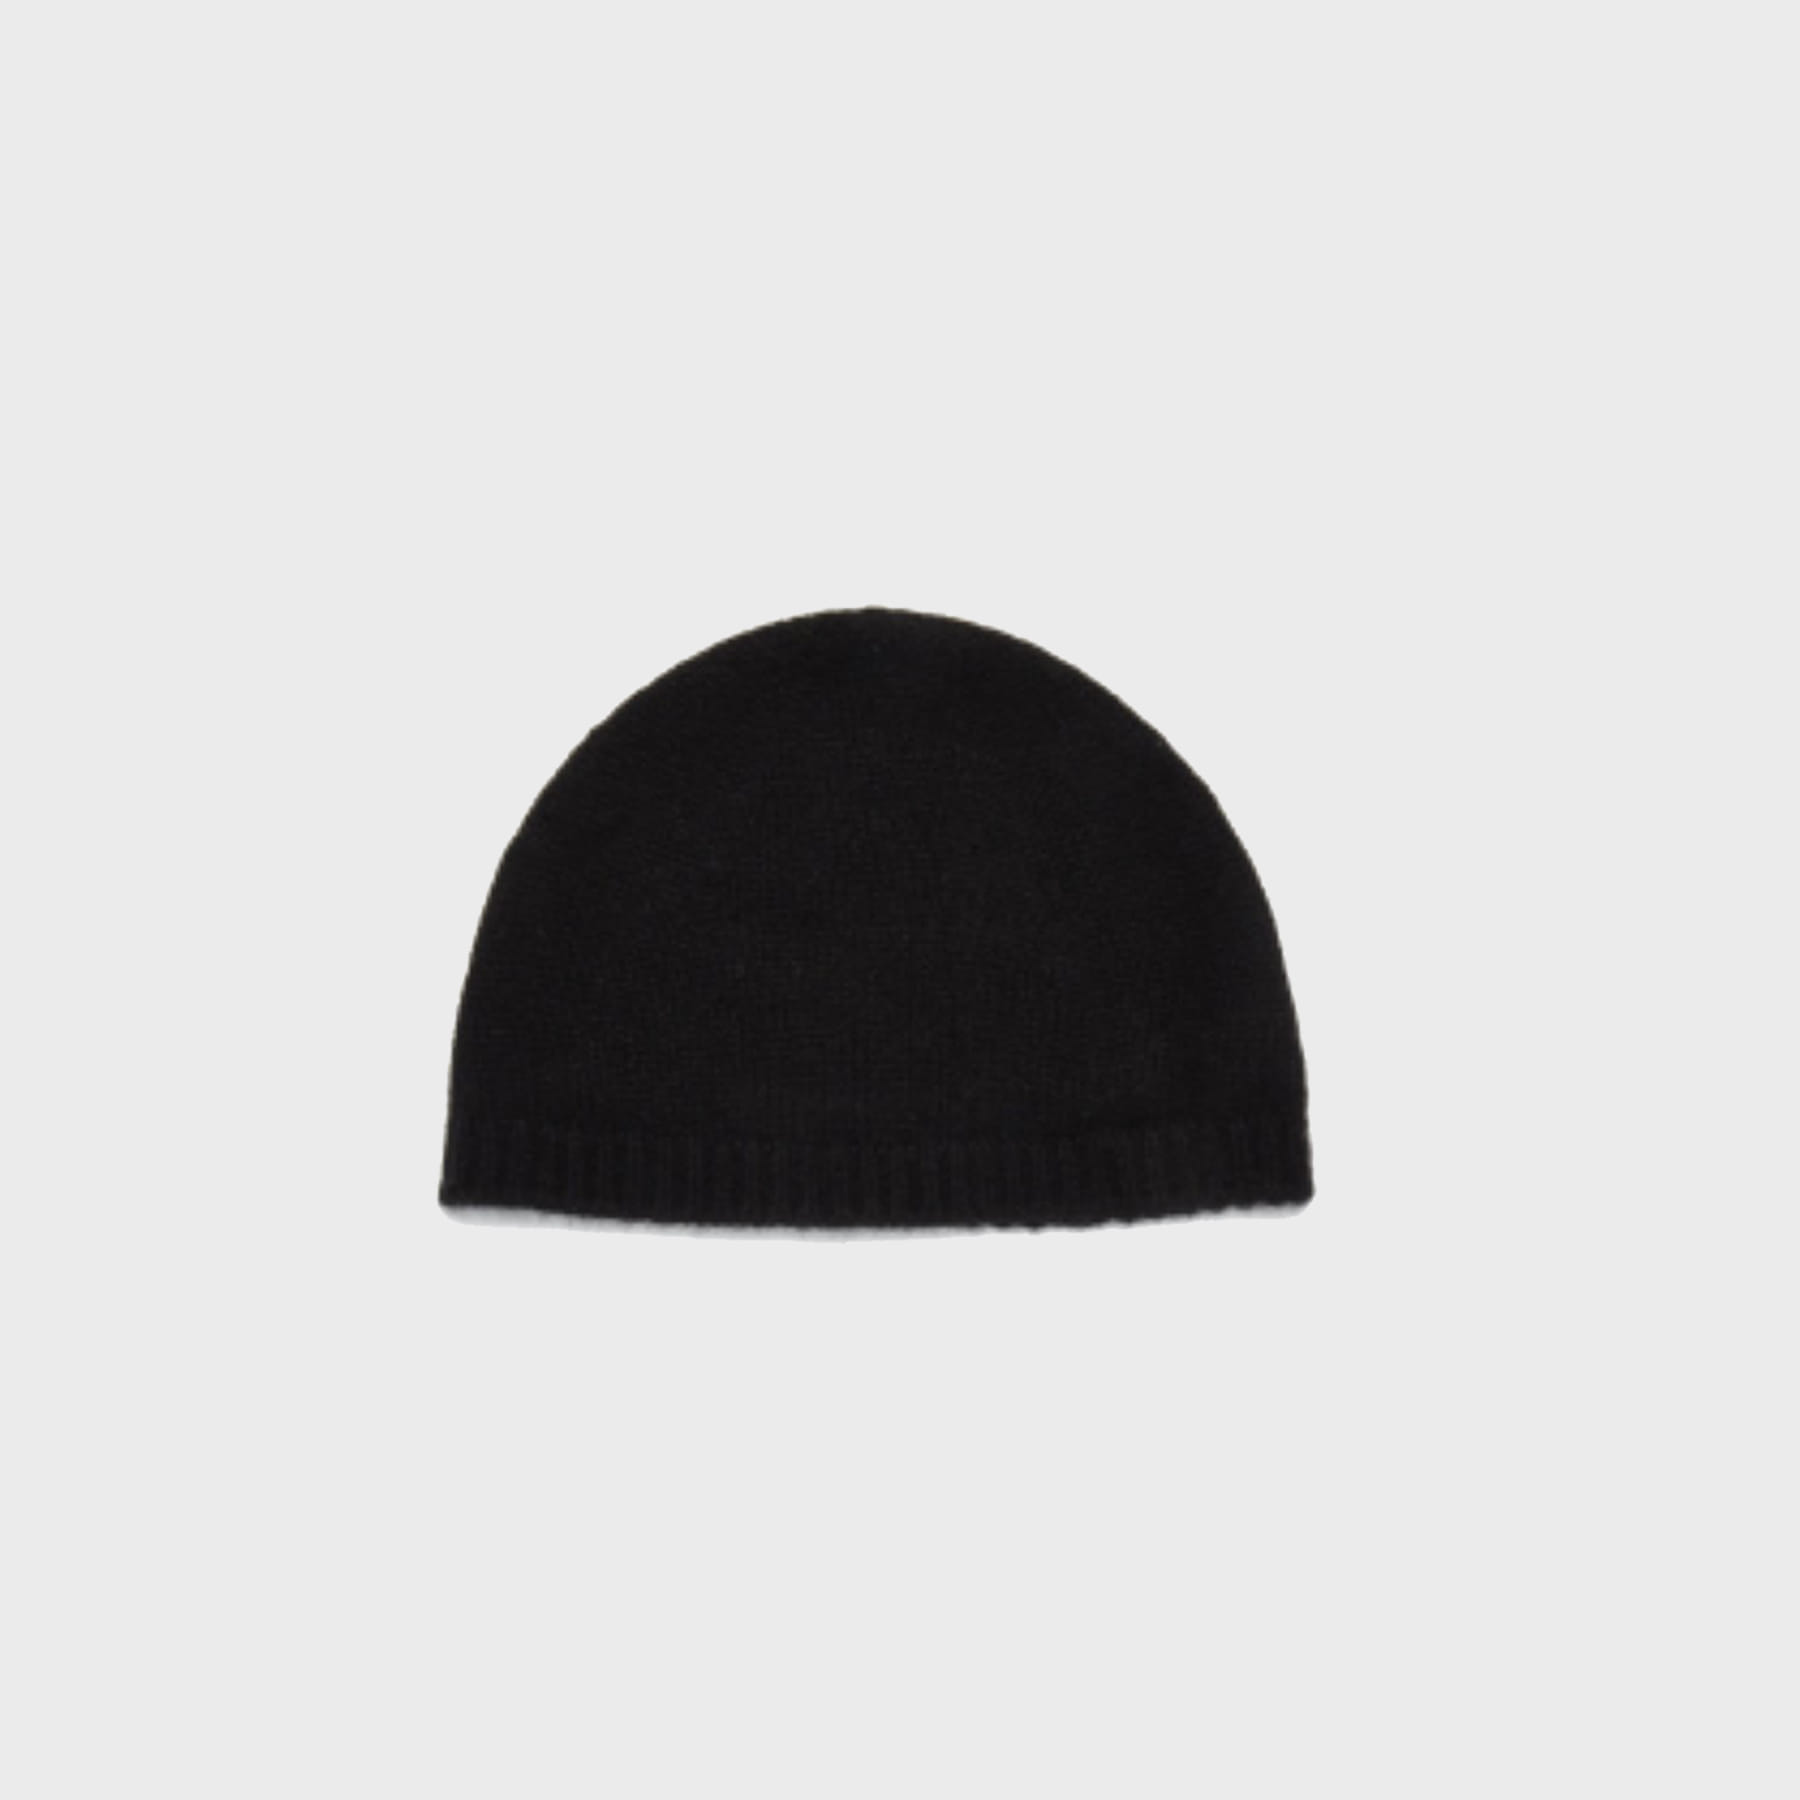 Wool watch cap (black)